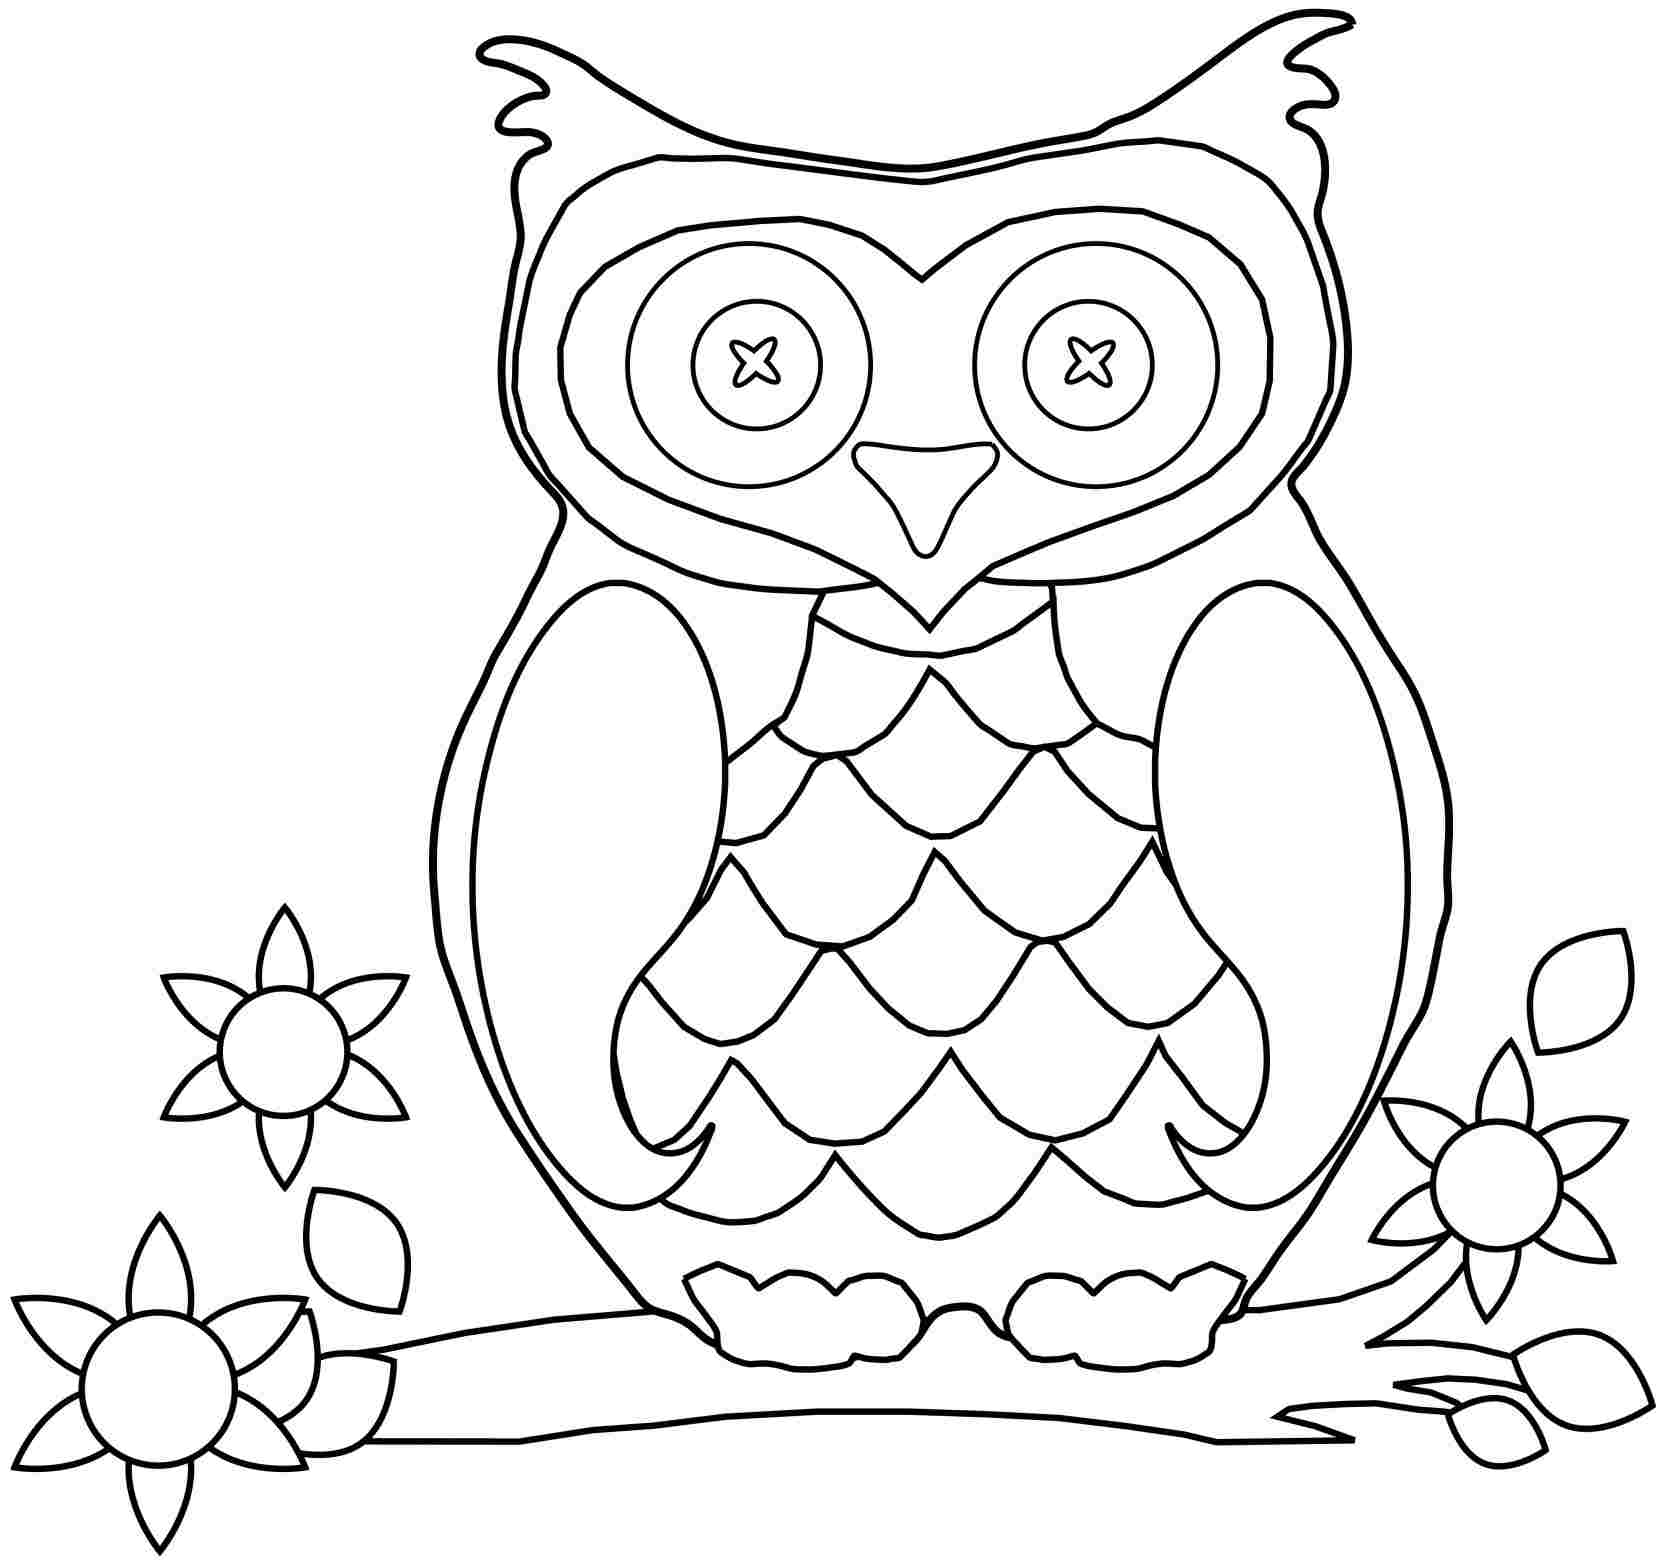 1663x1562 Simple Picture Of An Owl To Color Printable Co